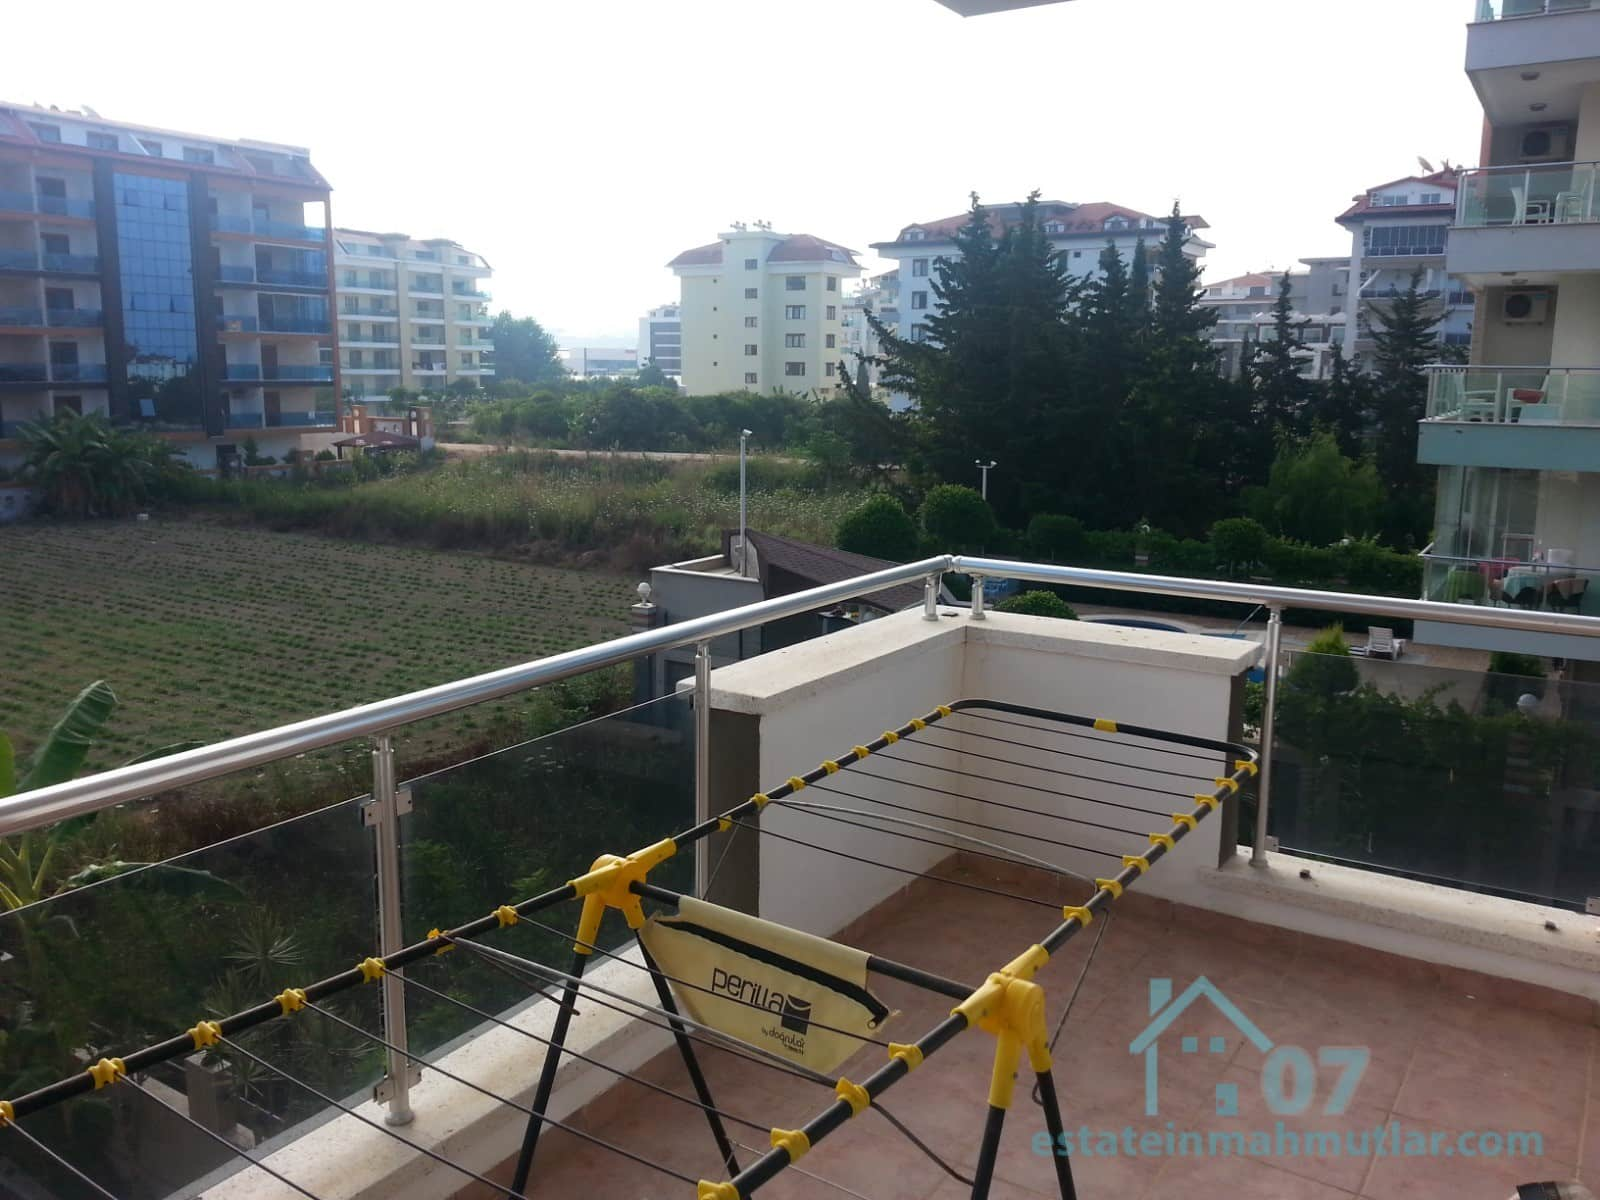 One Bedroom Sea Side Apartment with sea view in the Kestel Region of Alanya, Antalya